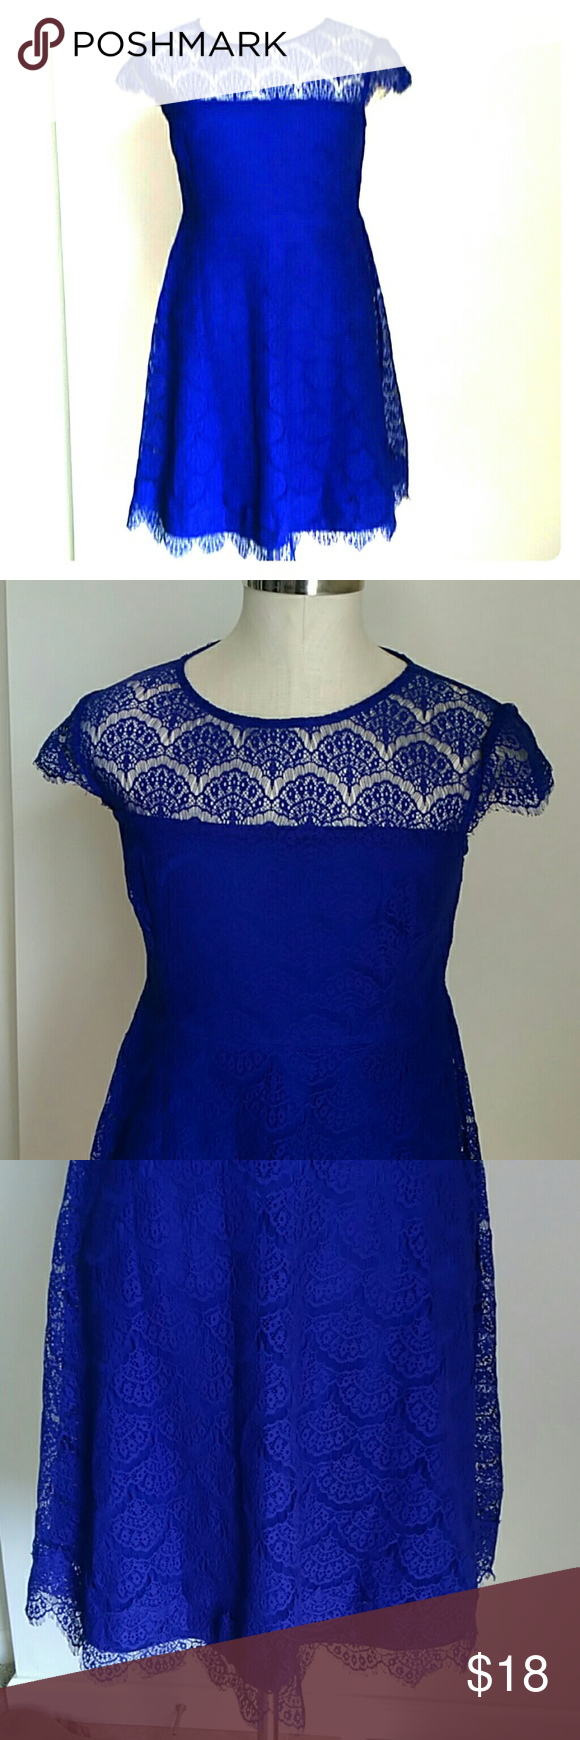 A Kash And Jess Lace Dress Blue Sz L Skater Cap Lovely Look